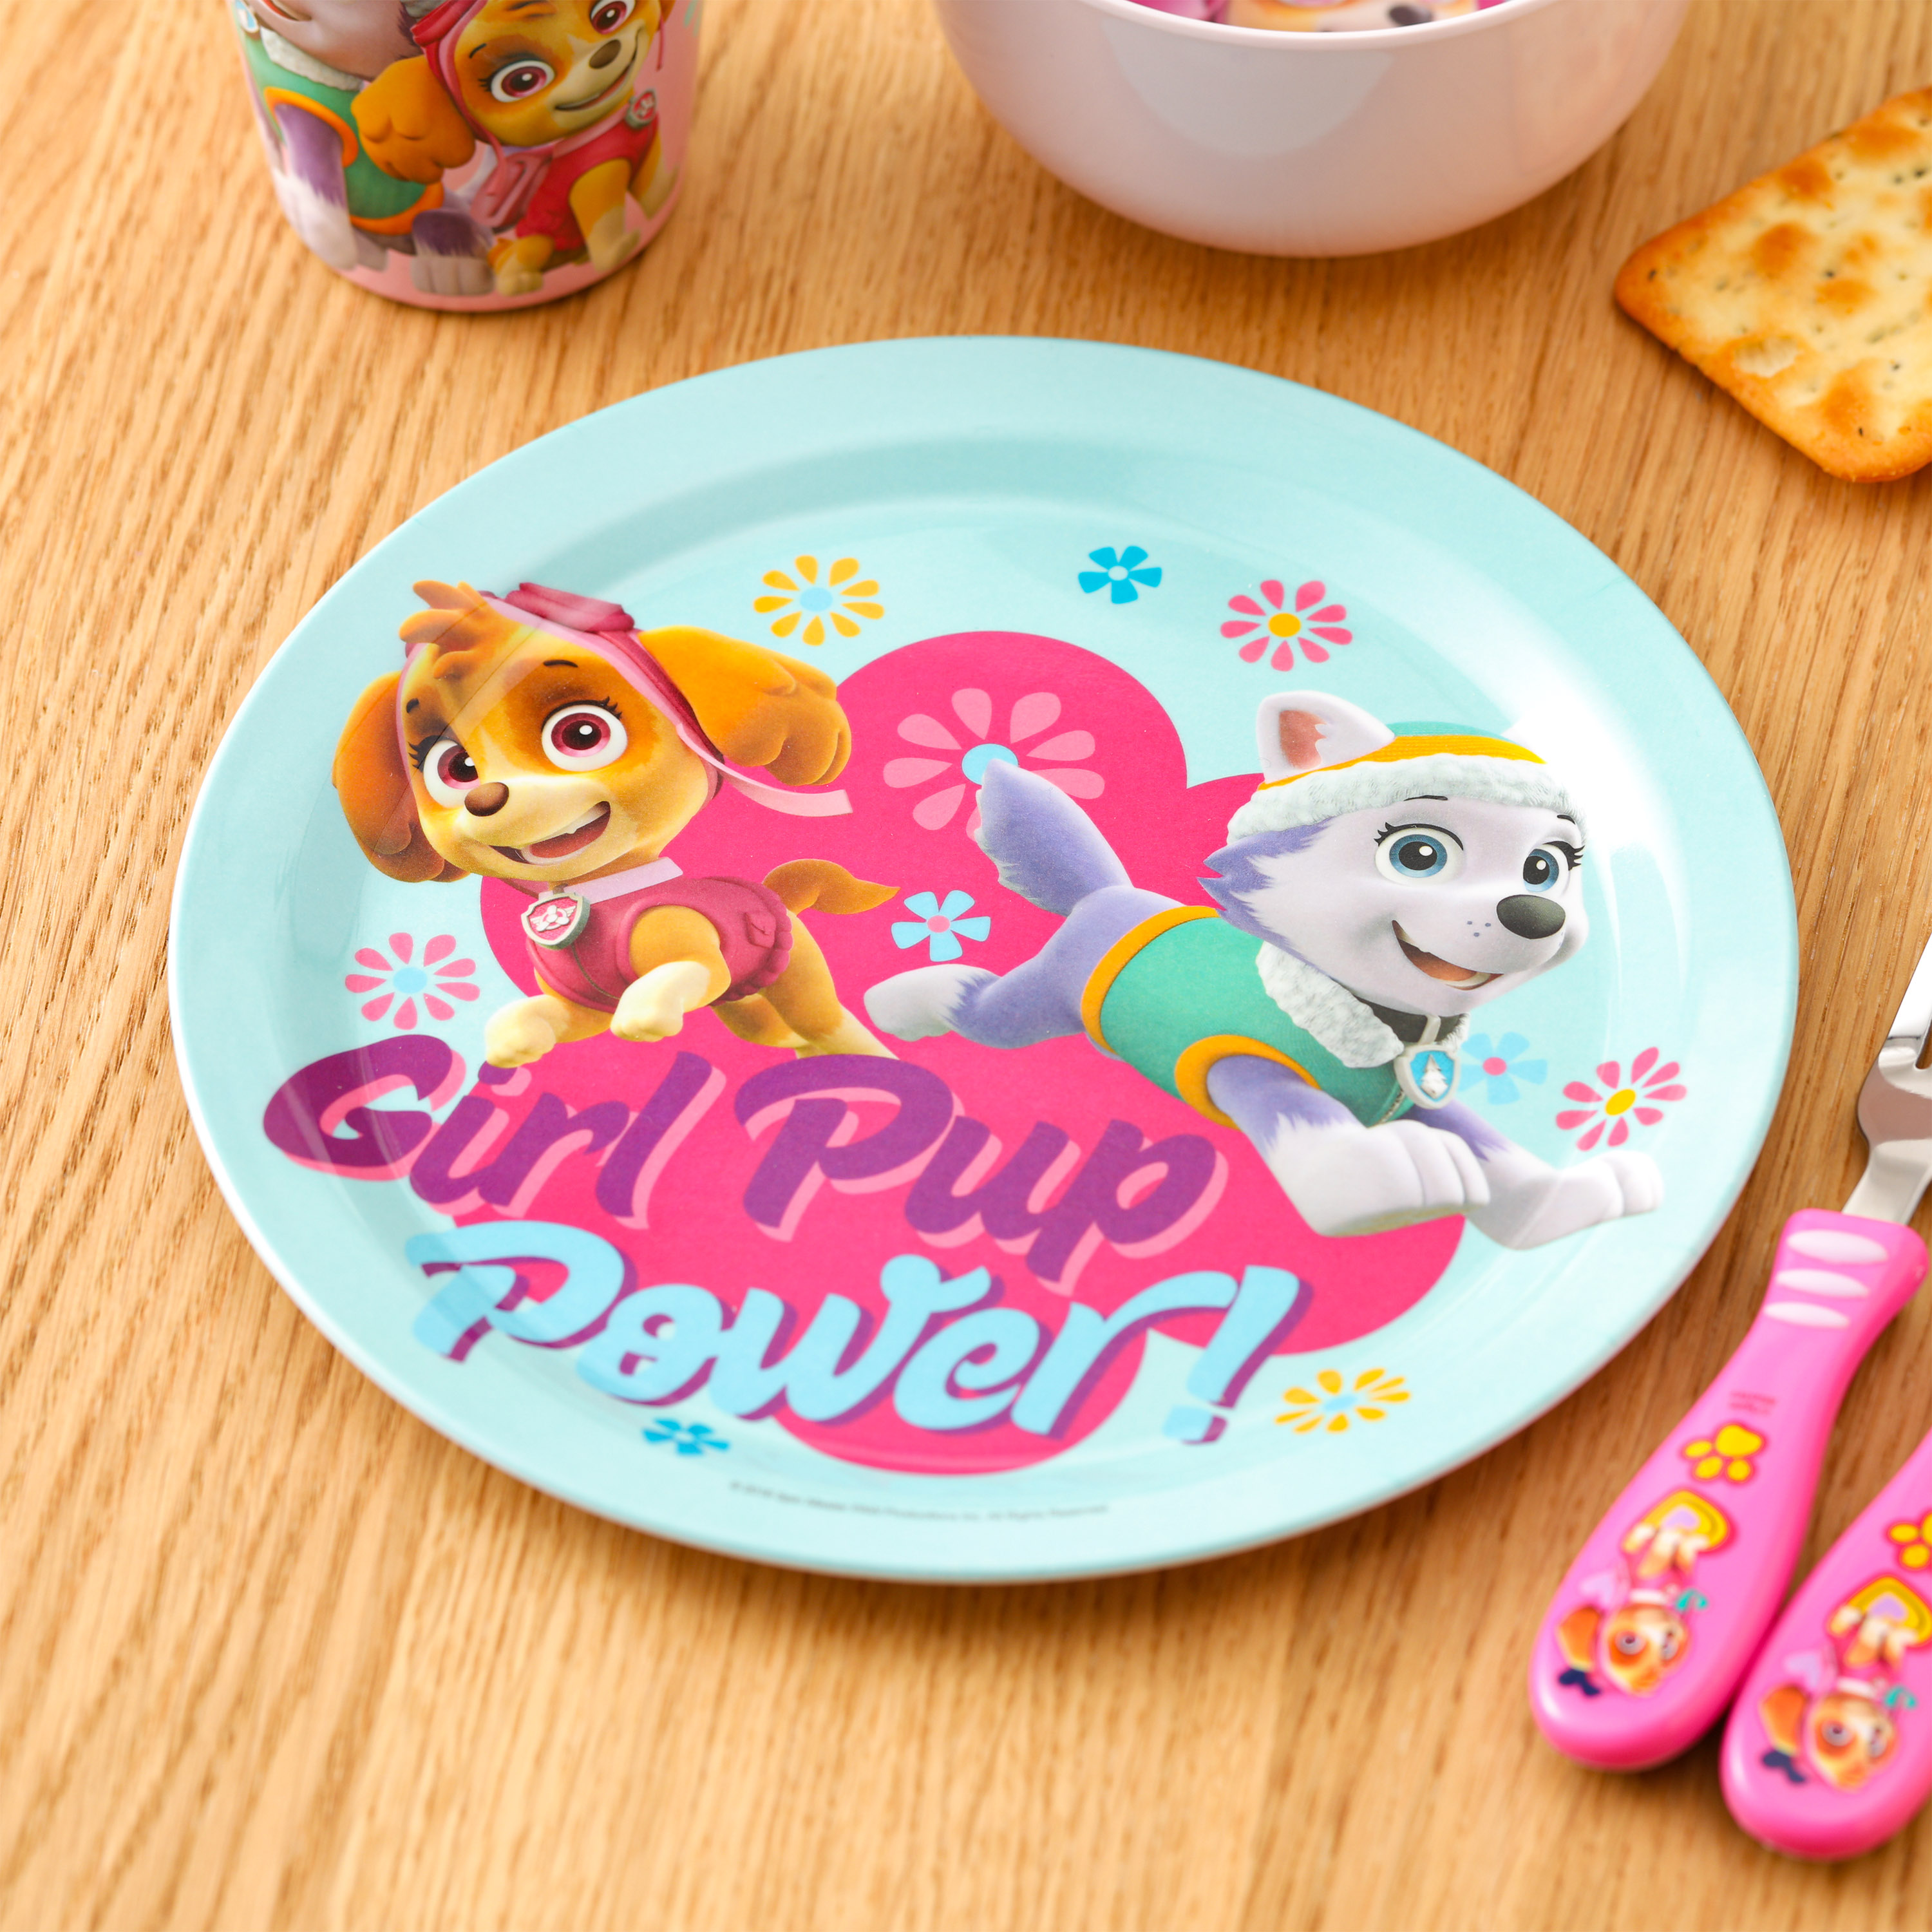 Paw Patrol Dinnerware Set, Skye and Everest, 5-piece set slideshow image 4